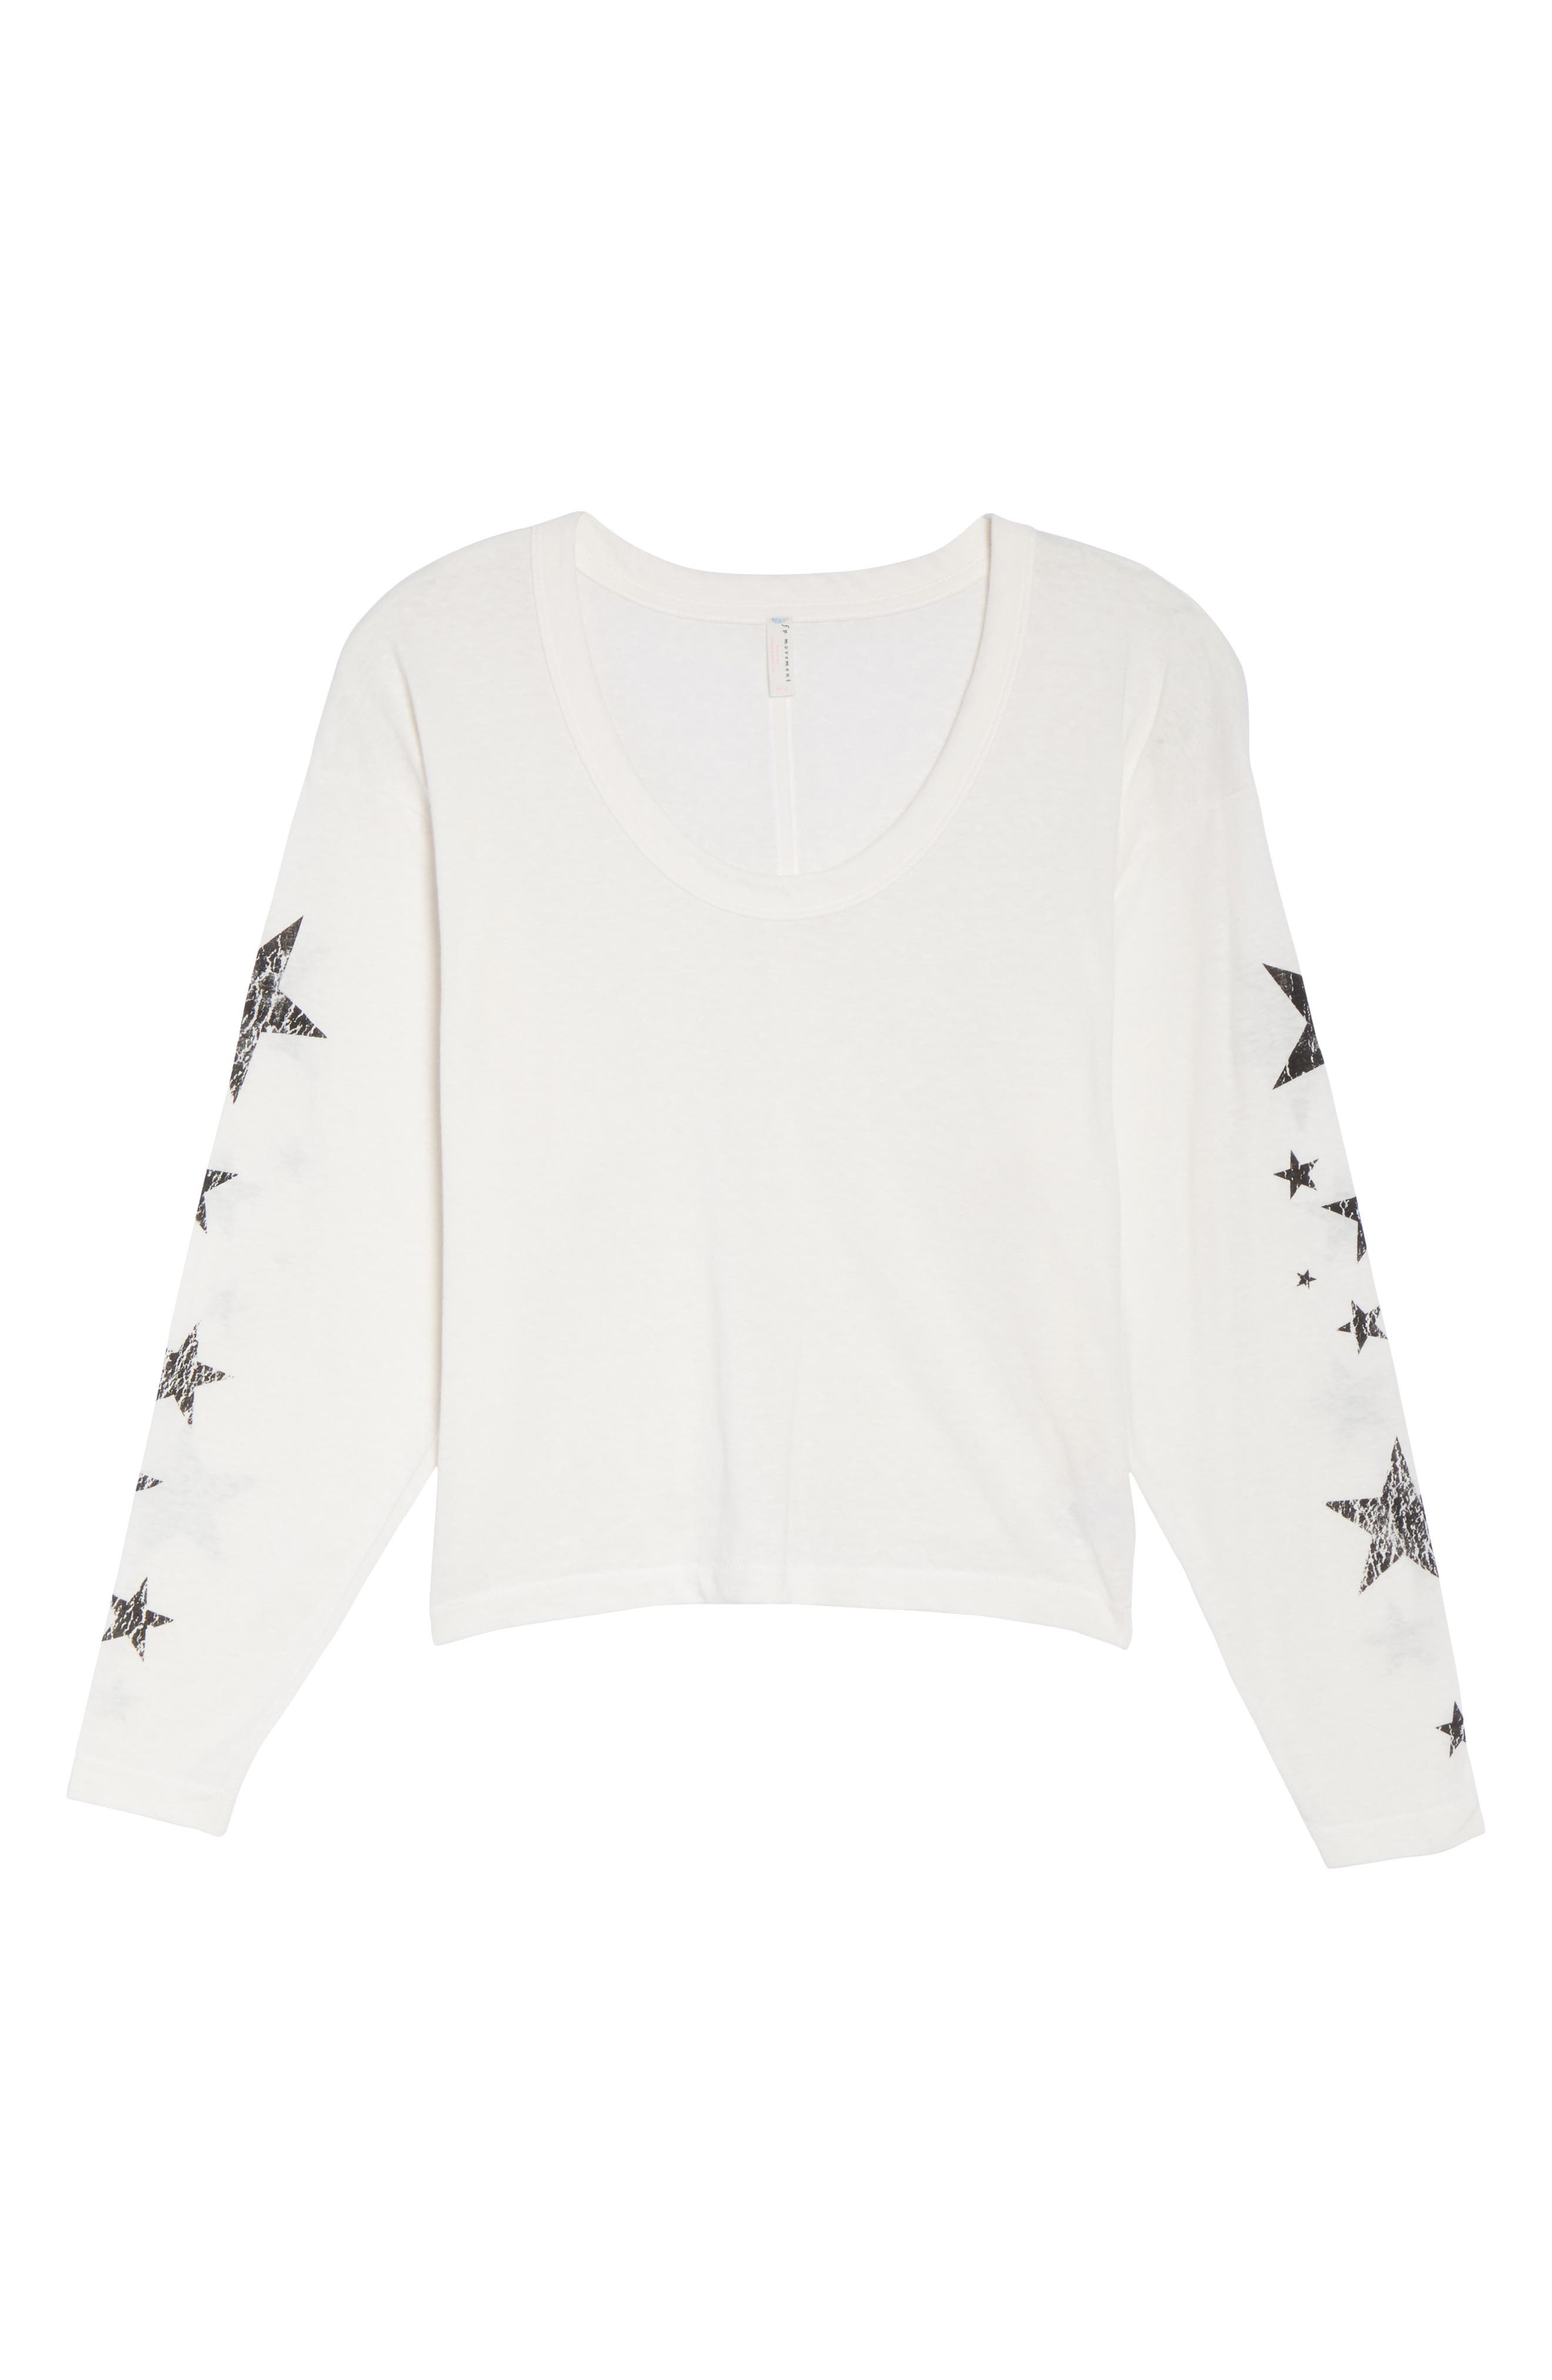 Free People Melrose Star Graphic Top,                             Alternate thumbnail 18, color,